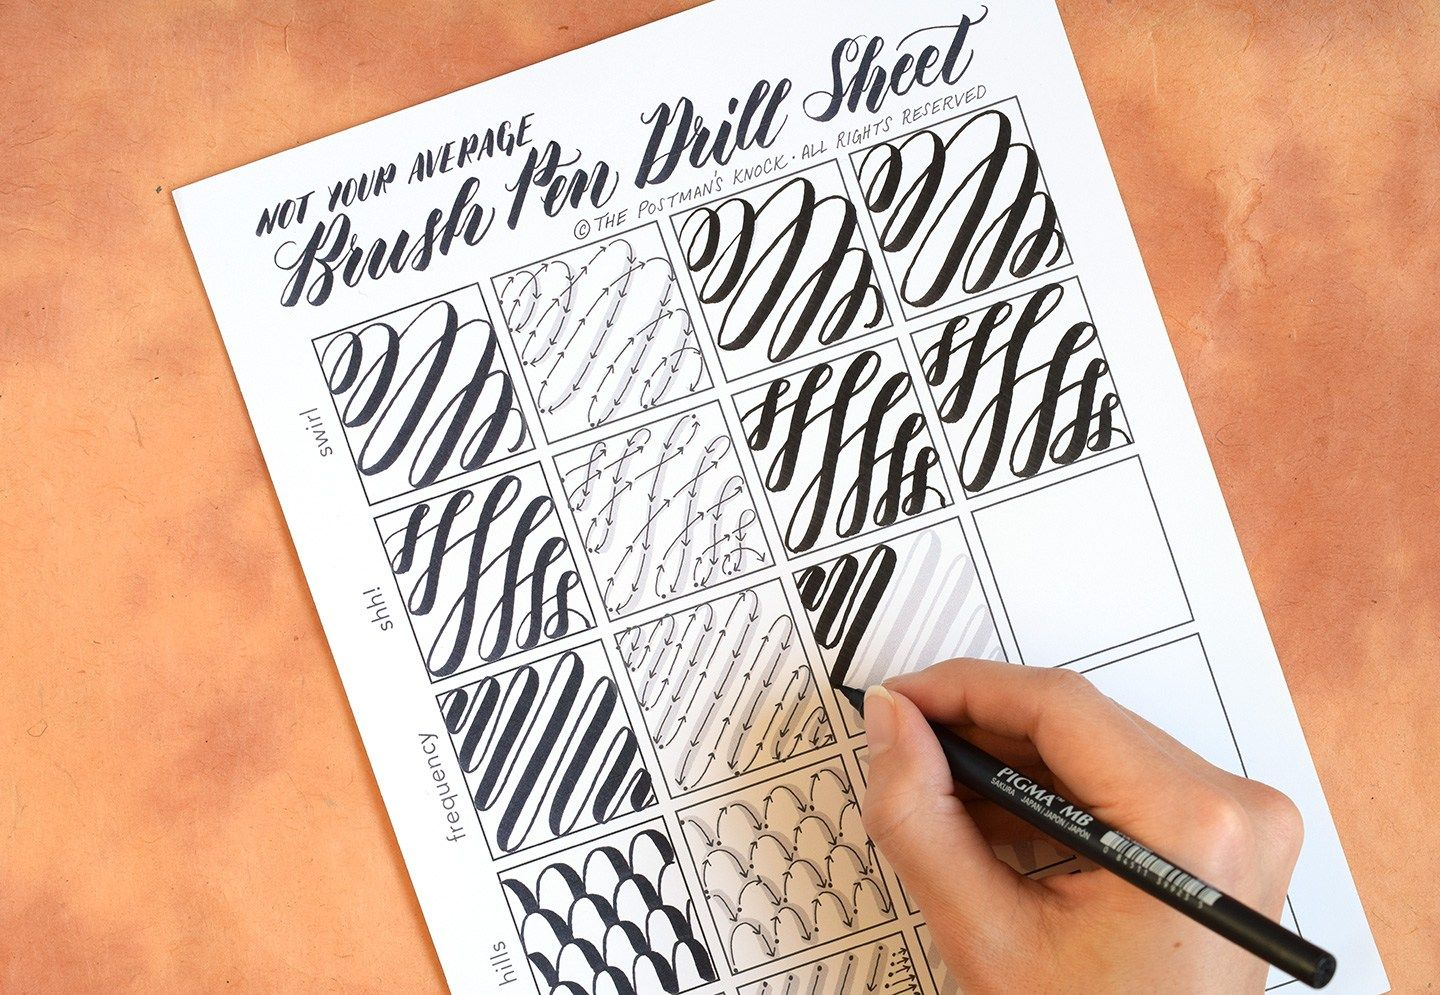 Not Your Average Brush Pen Drills Sheet